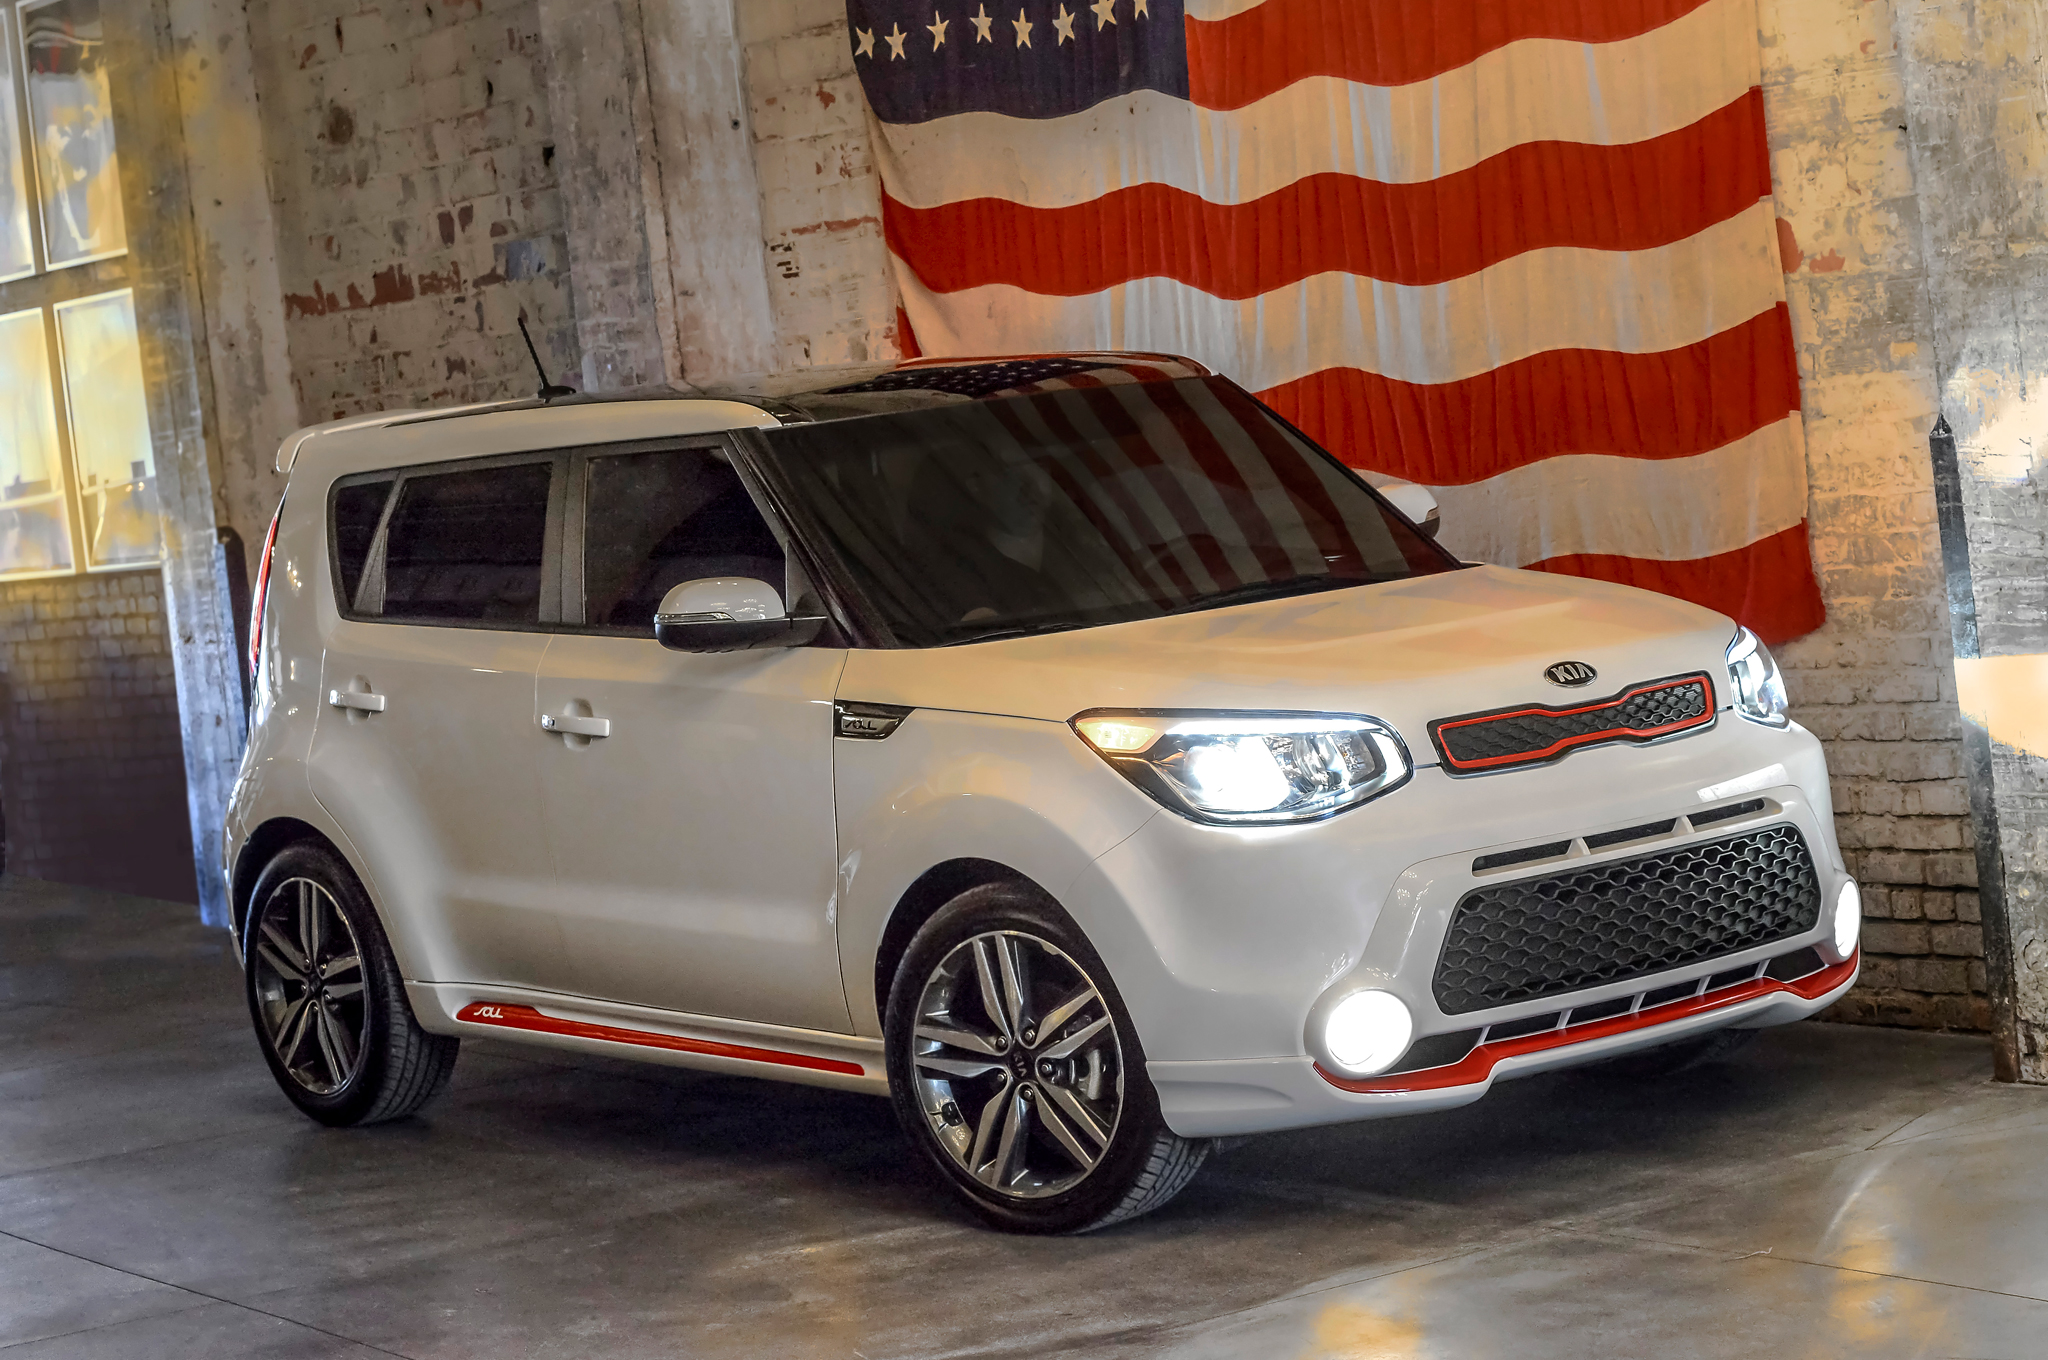 Delightful 2014 Kia Soul Gets 5 Star NHTSA Safety Rating